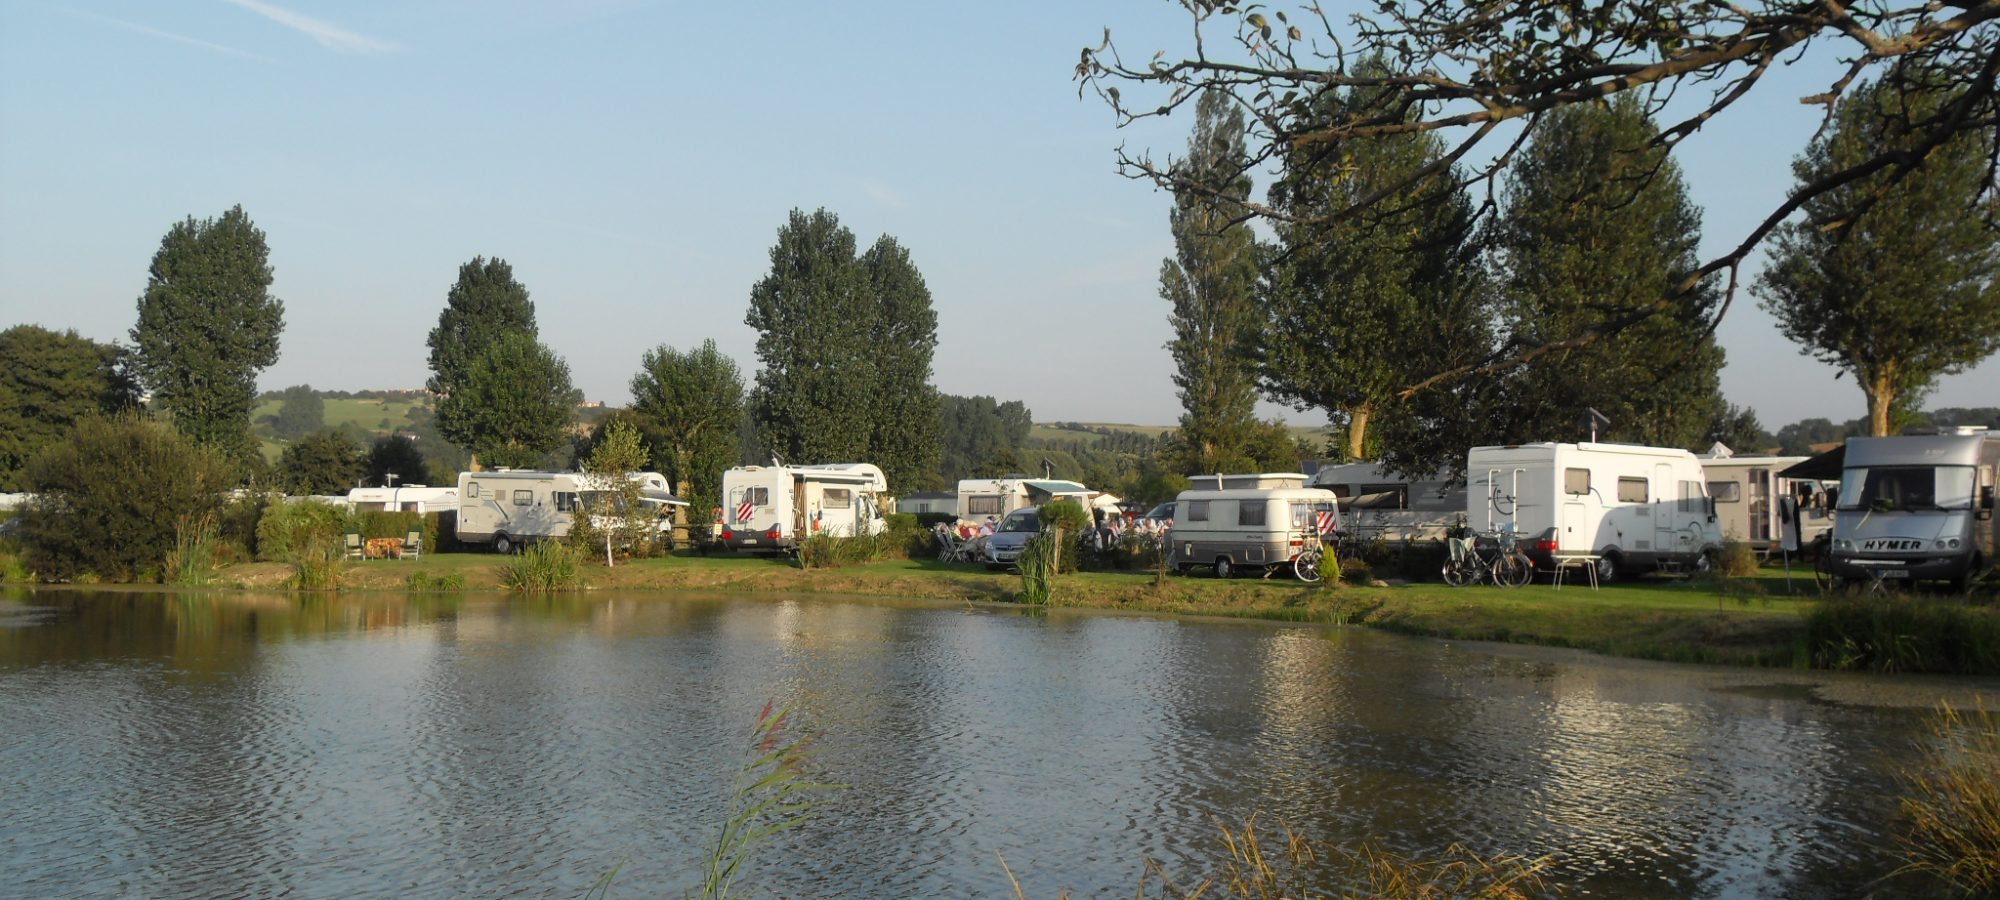 Emplacement camping car dans le nord